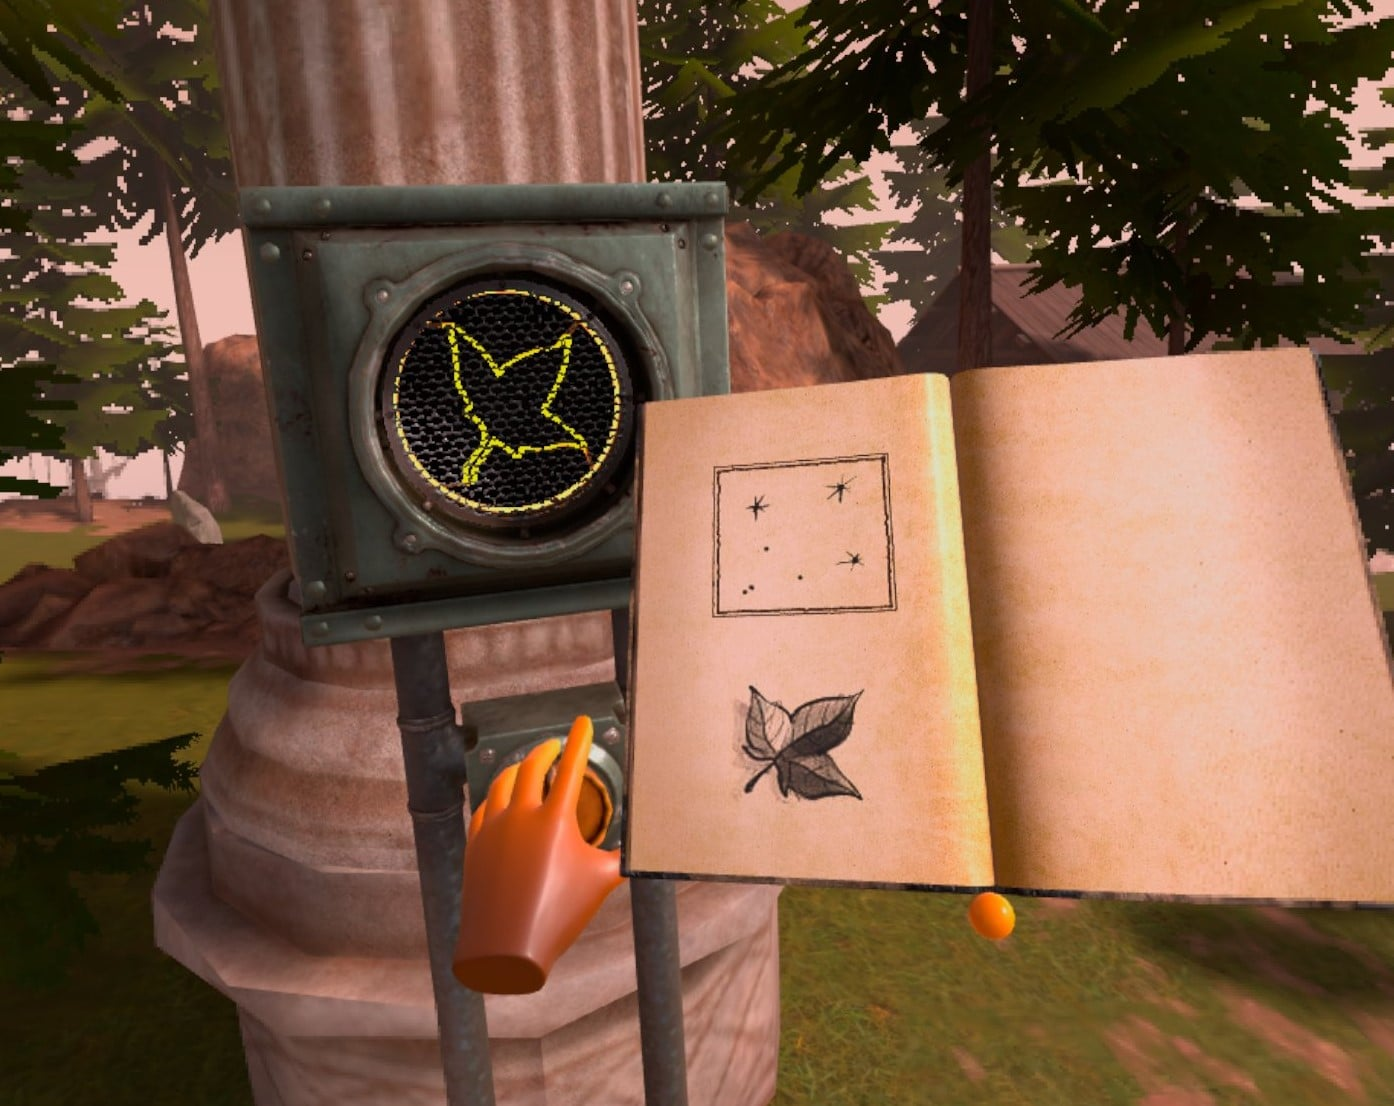 myst holding a book and turning a dial